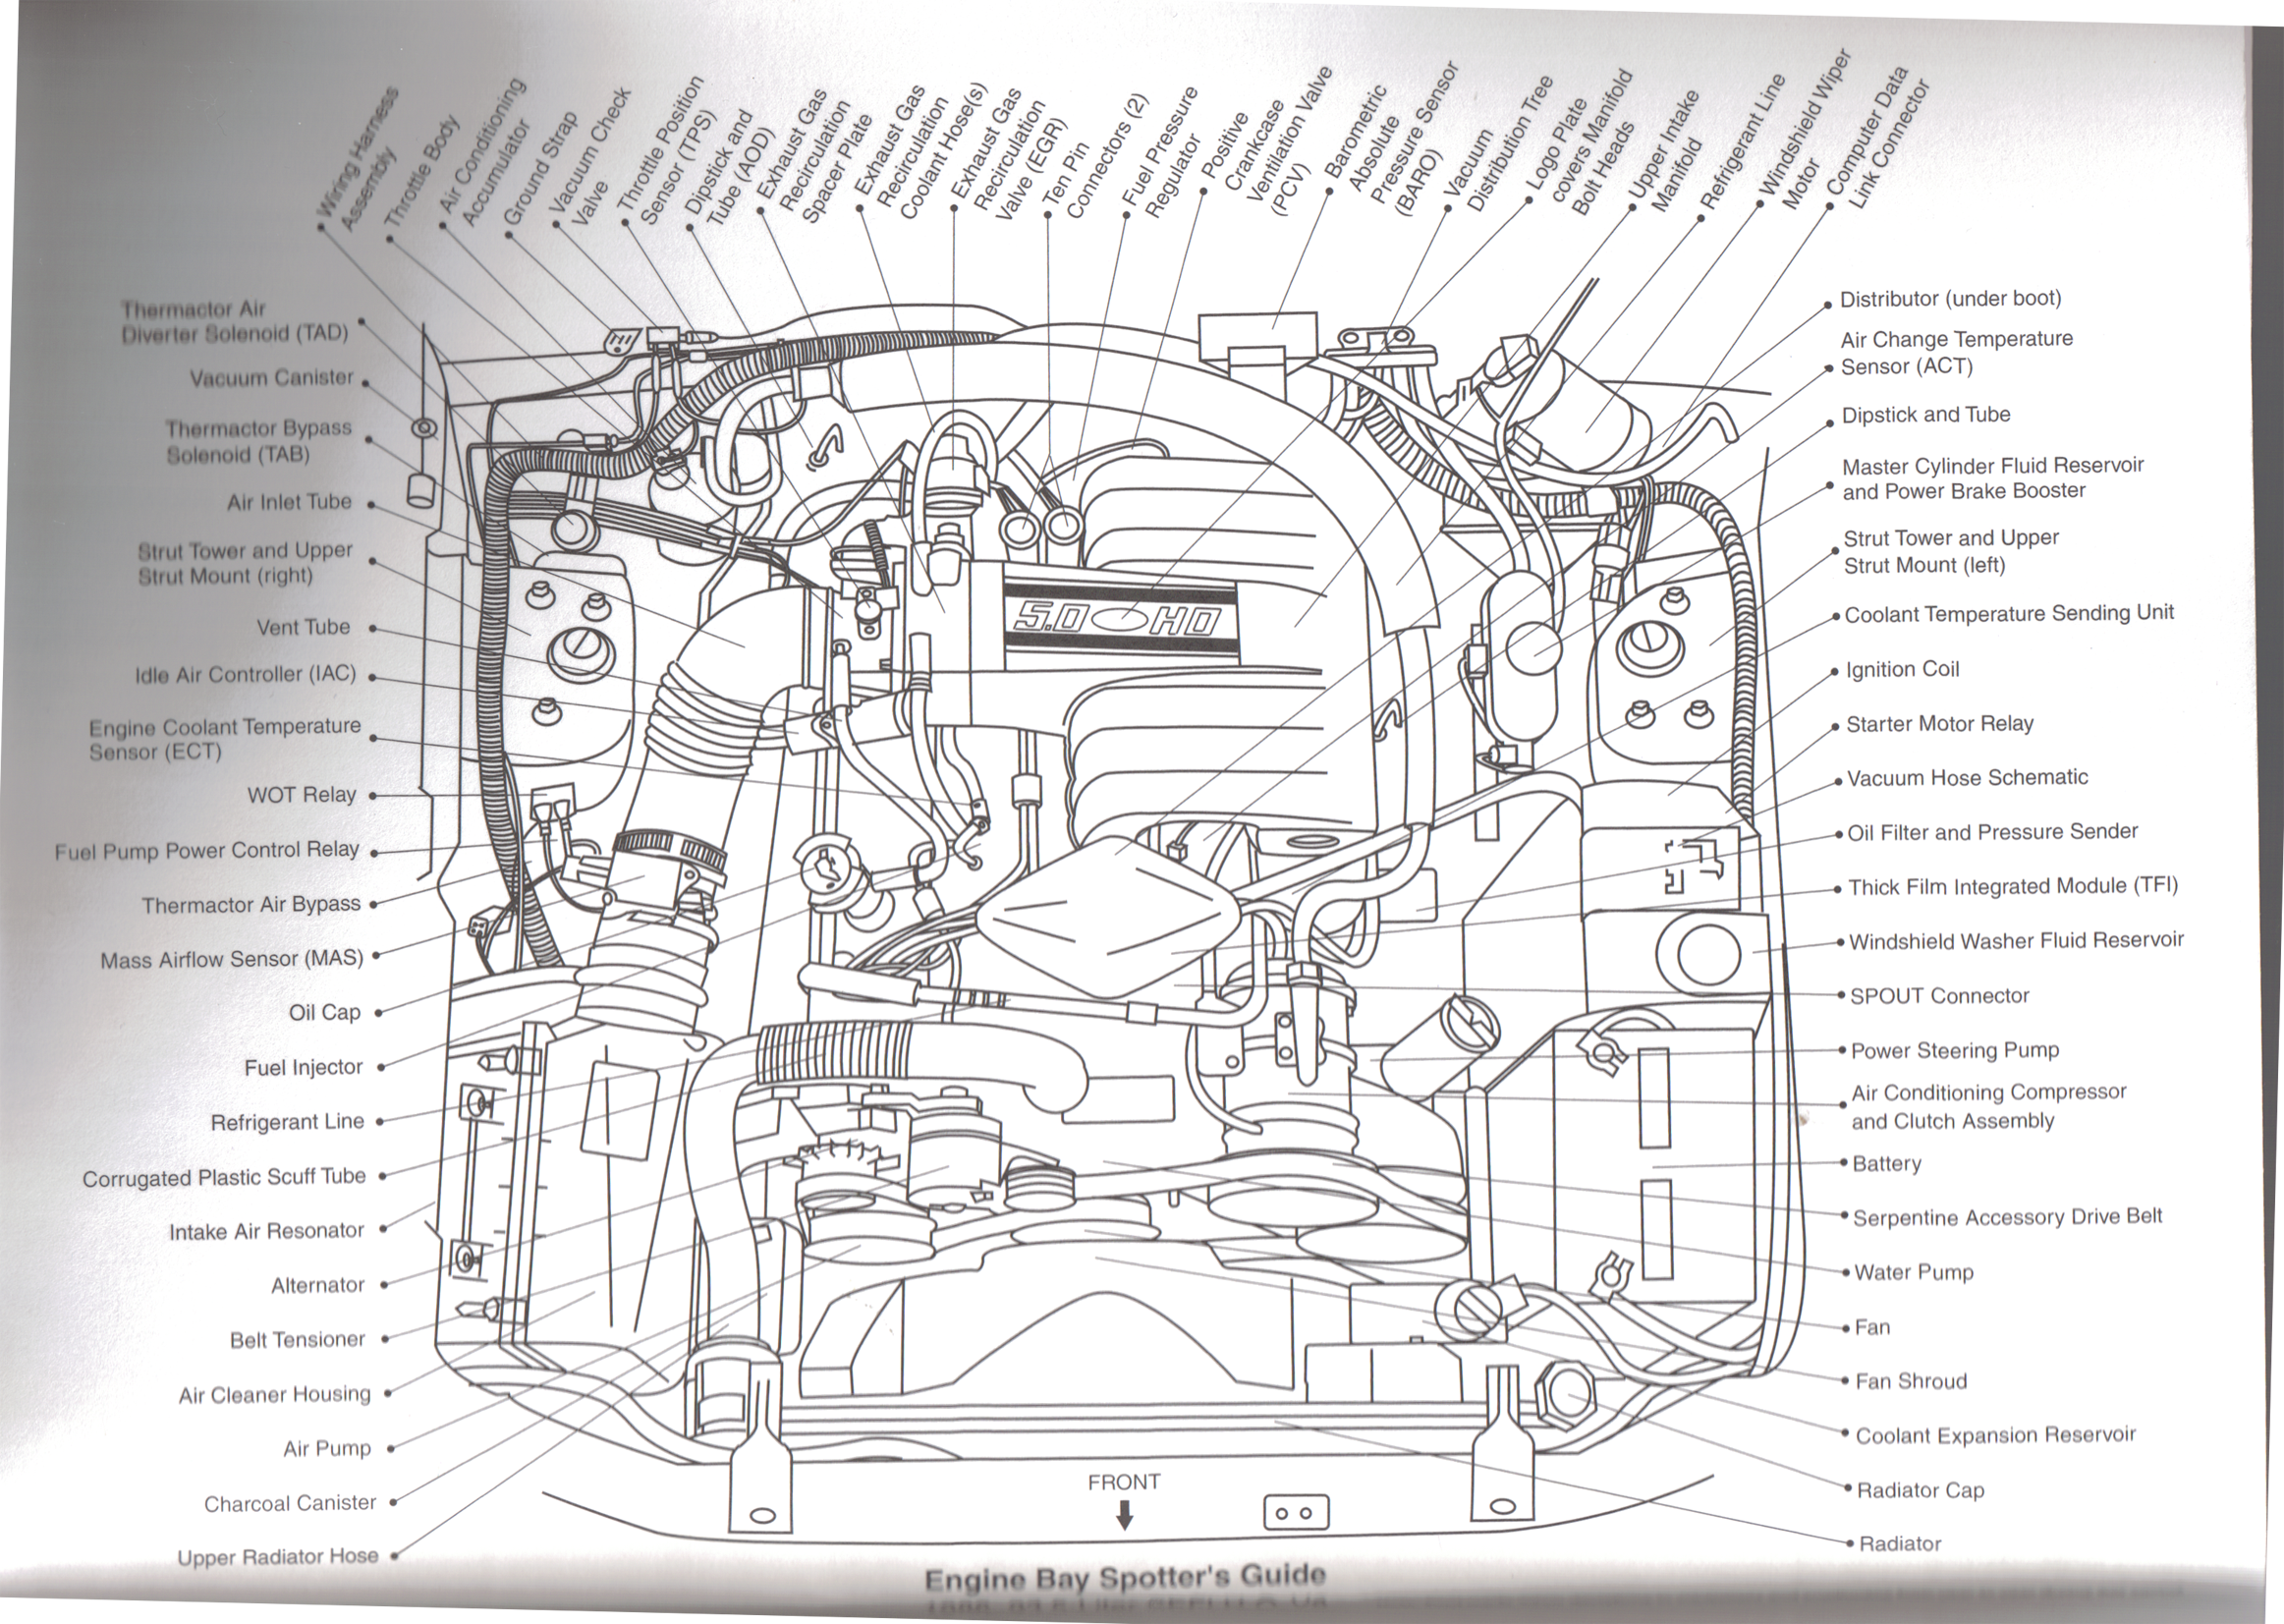 1987 1993 foxbody 5.0 sefi v8 engine part diagram everything you need to know about 1979 1993 foxbody mustangs  at mifinder.co